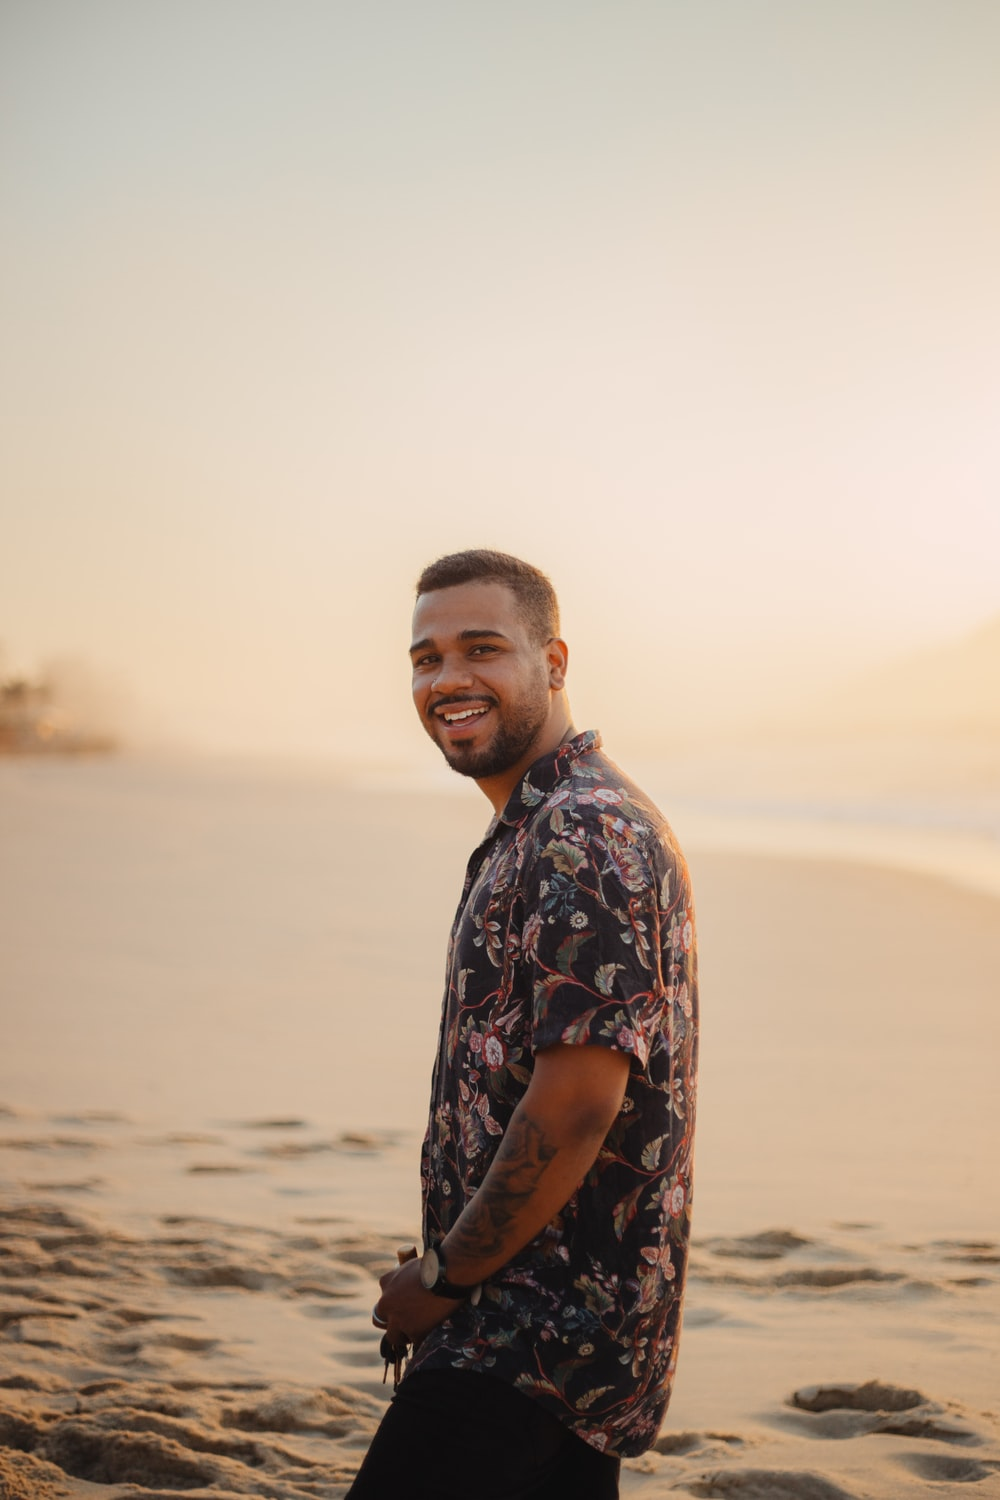 smiling man standing on sand shore during day